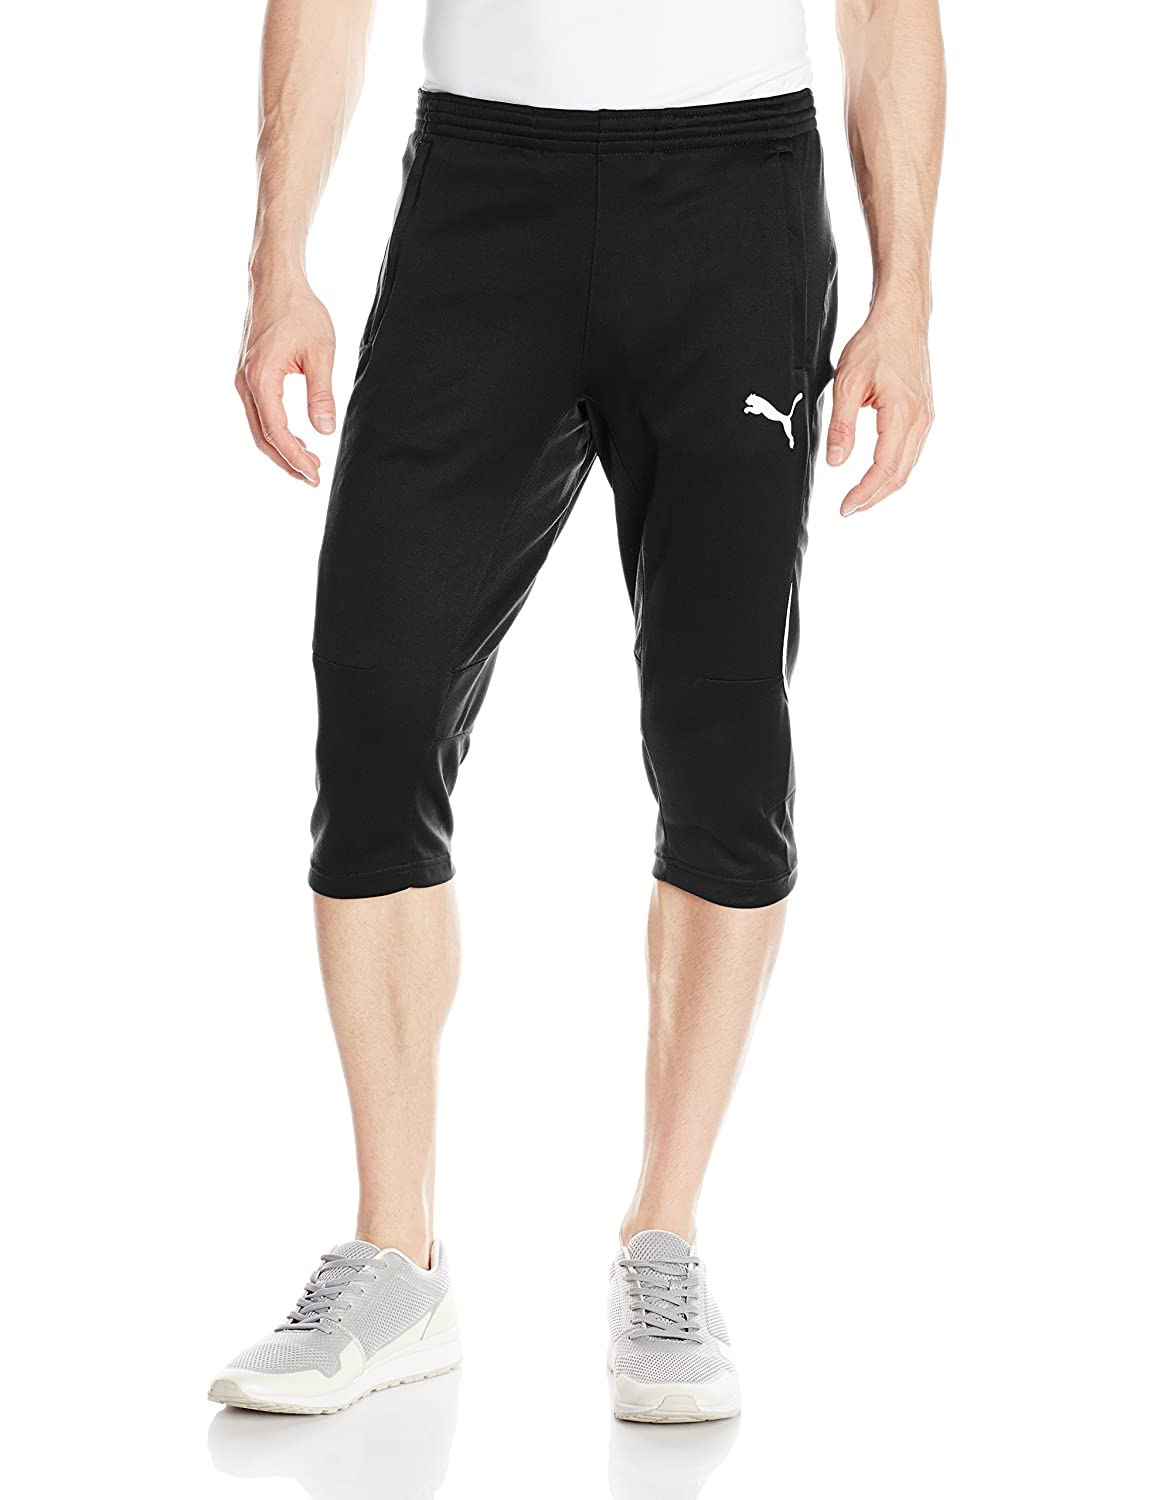 Puma Men's 3 4 Training Pant, schwarz Weiß, Large